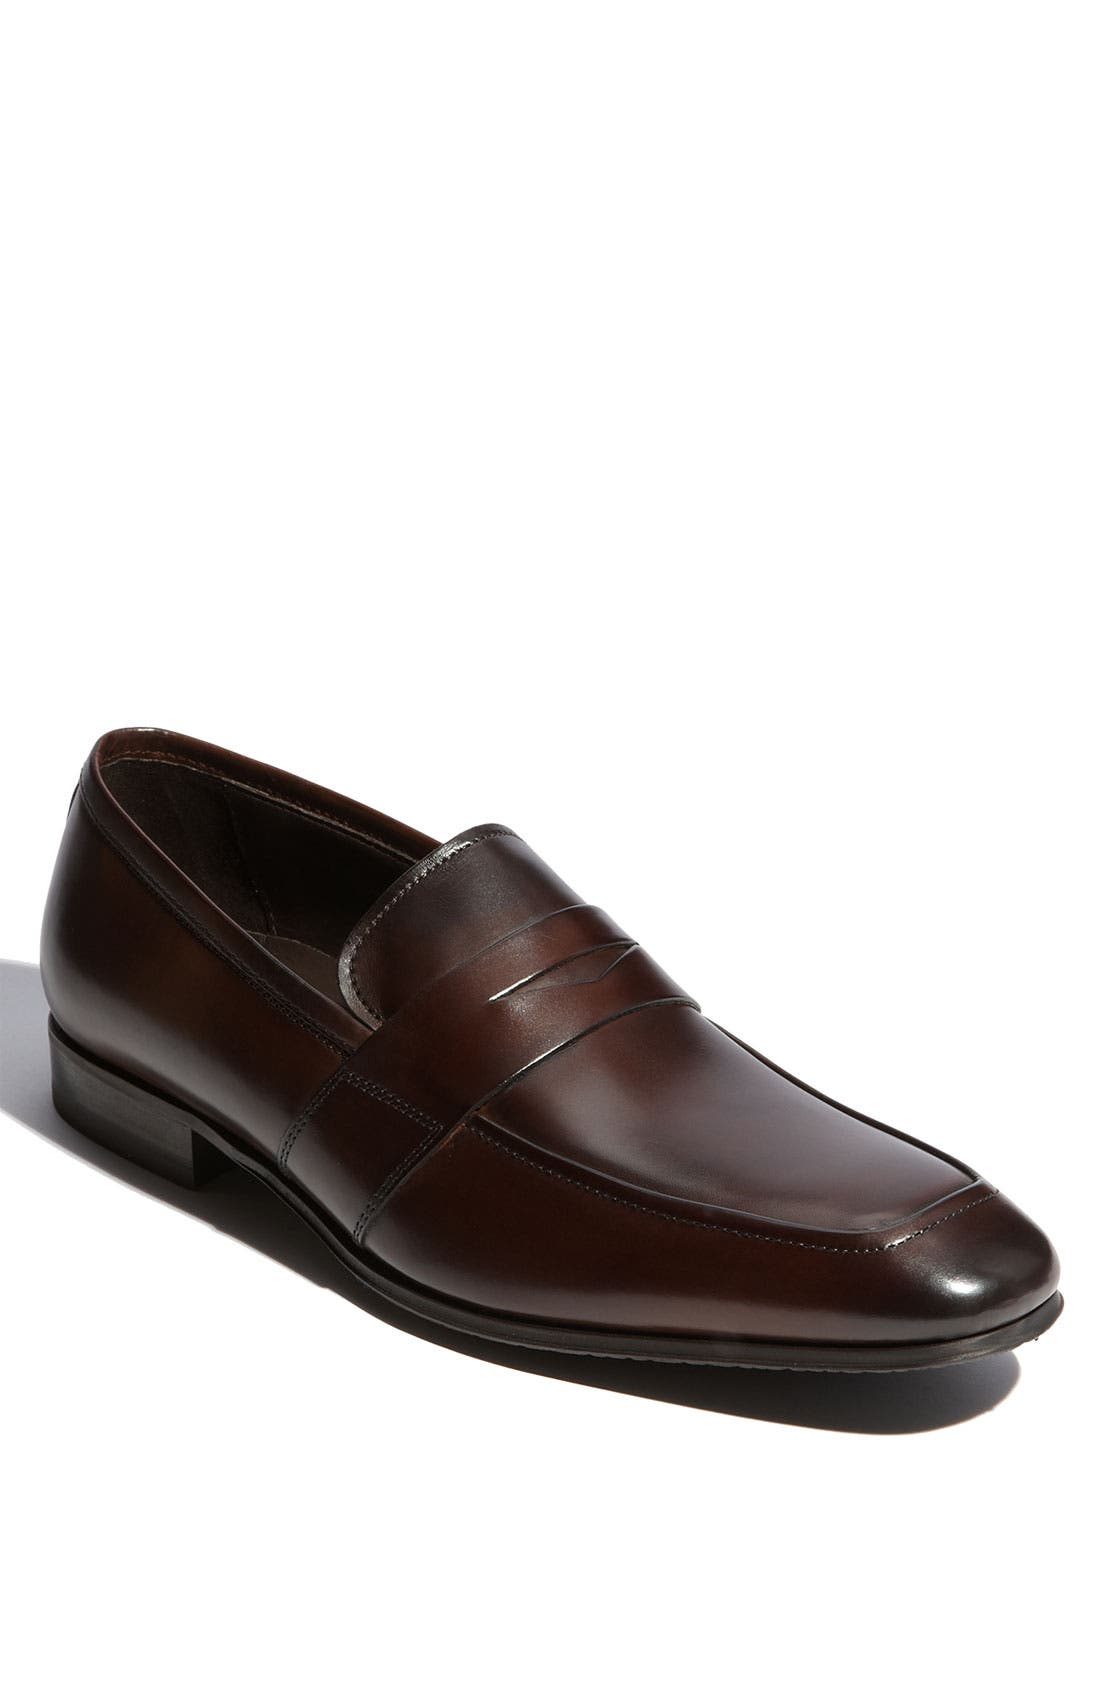 Main Image - To Boot New York 'Senato' Penny Loafer (Men)